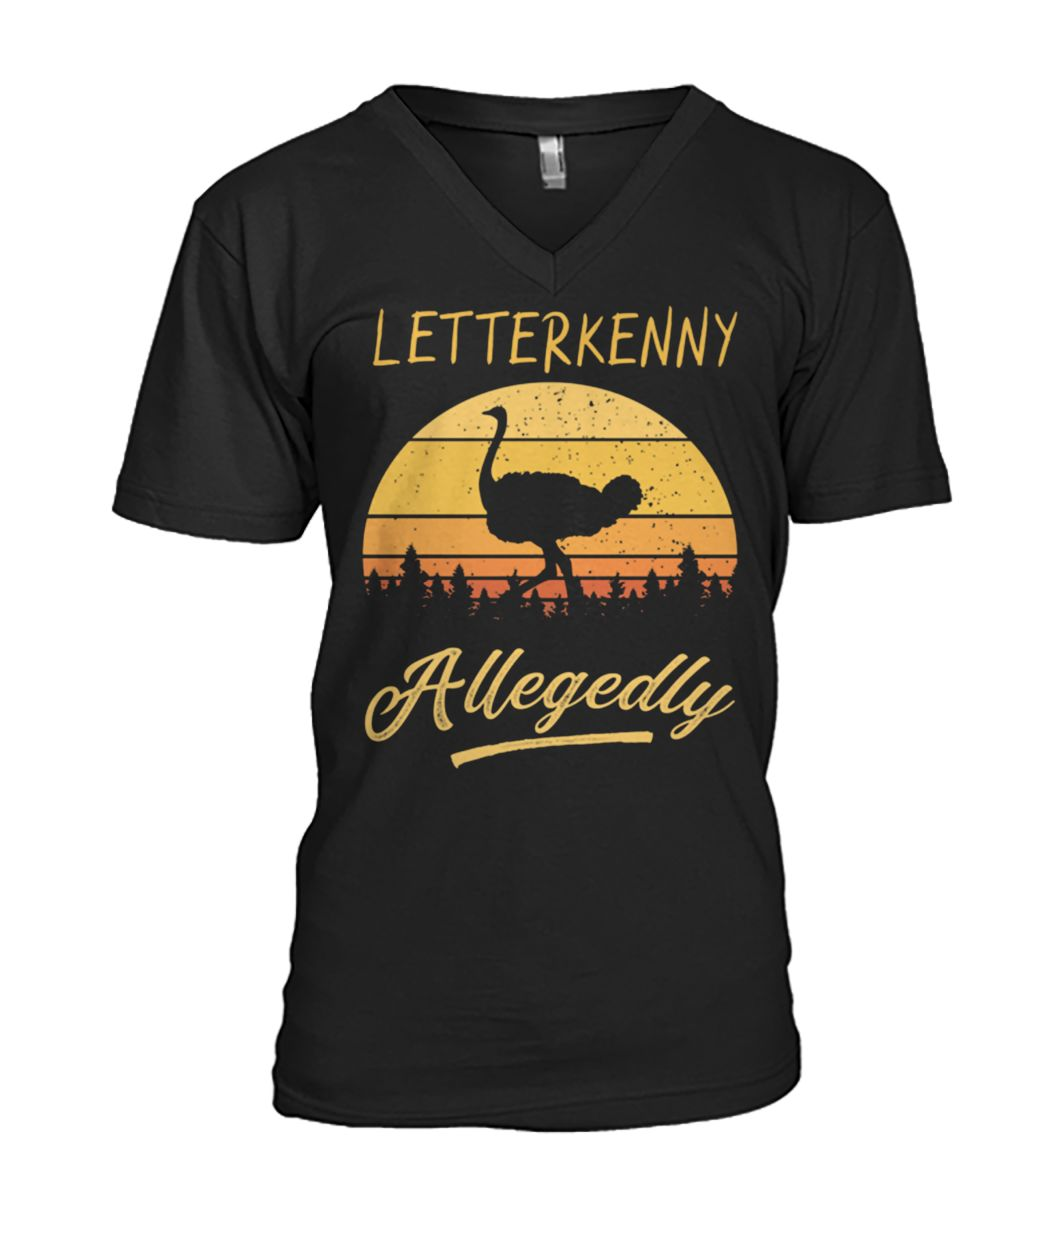 Letterkenny allegedly ostrich vintage mens v-neck